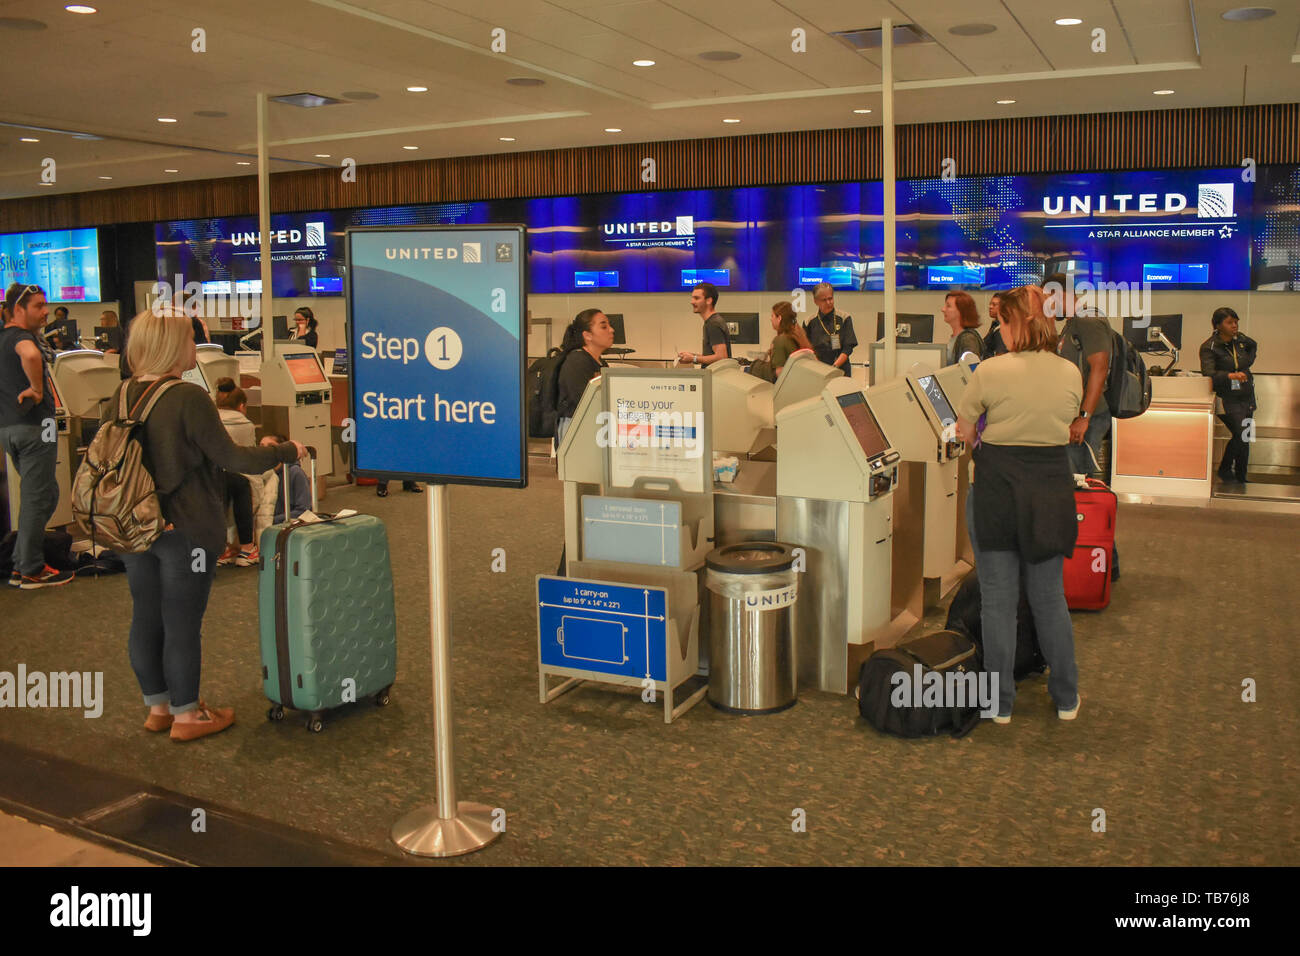 Orlando, Florida.  March 01, 2019. People using United Airlines Self service check-in at Orlando International Airport. - Stock Image